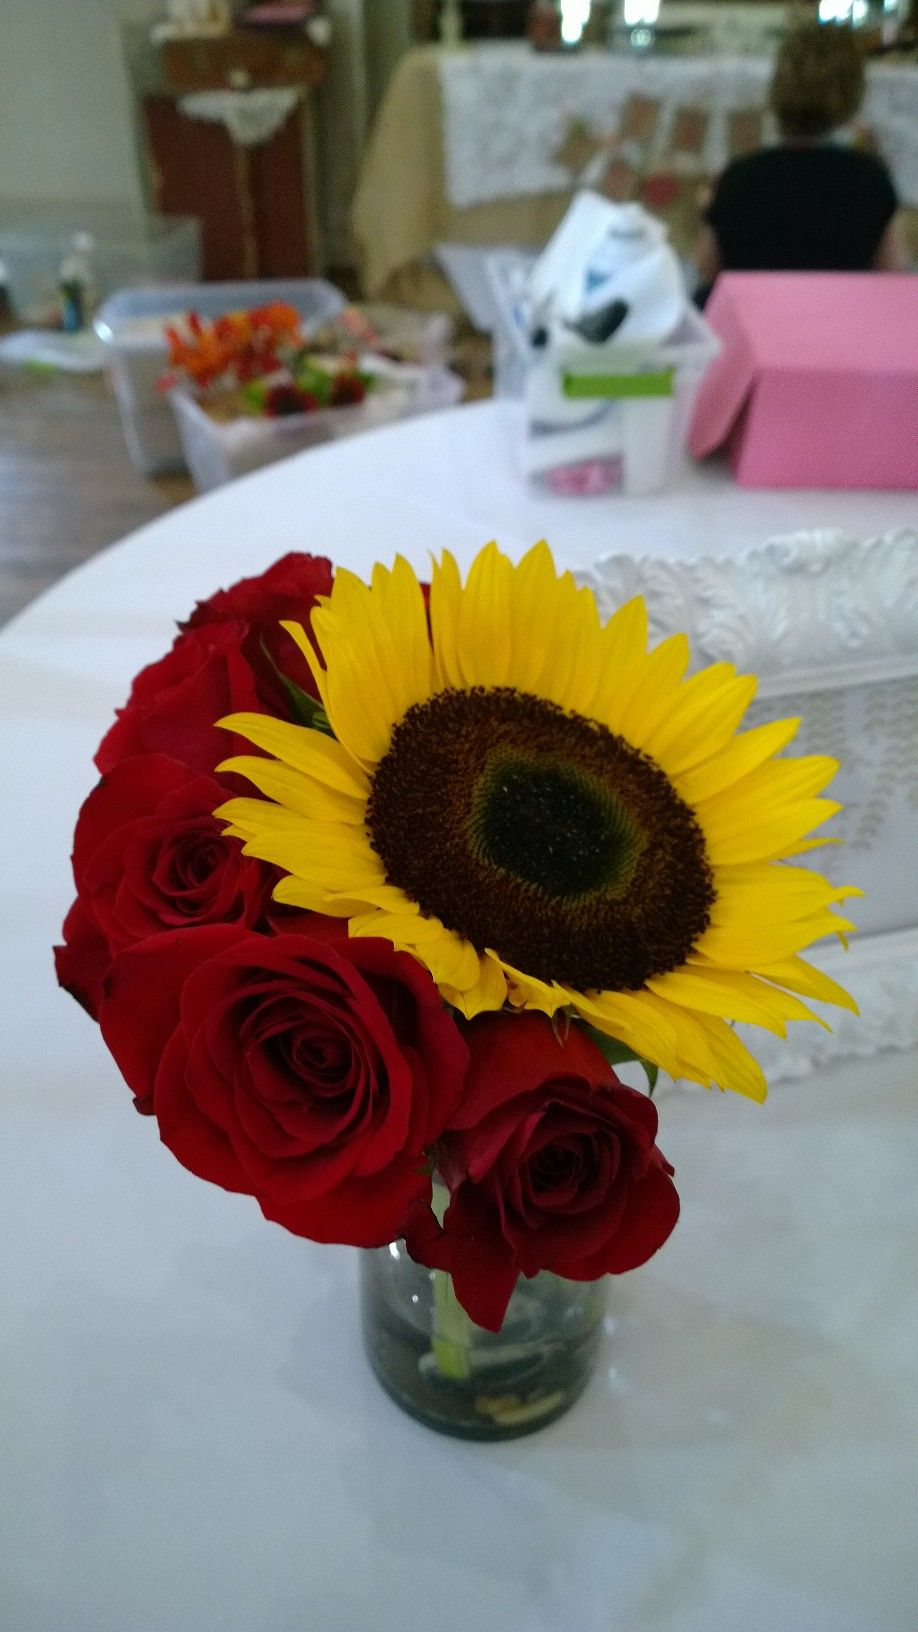 Sunflowers and white roses look beautiful in a bridal